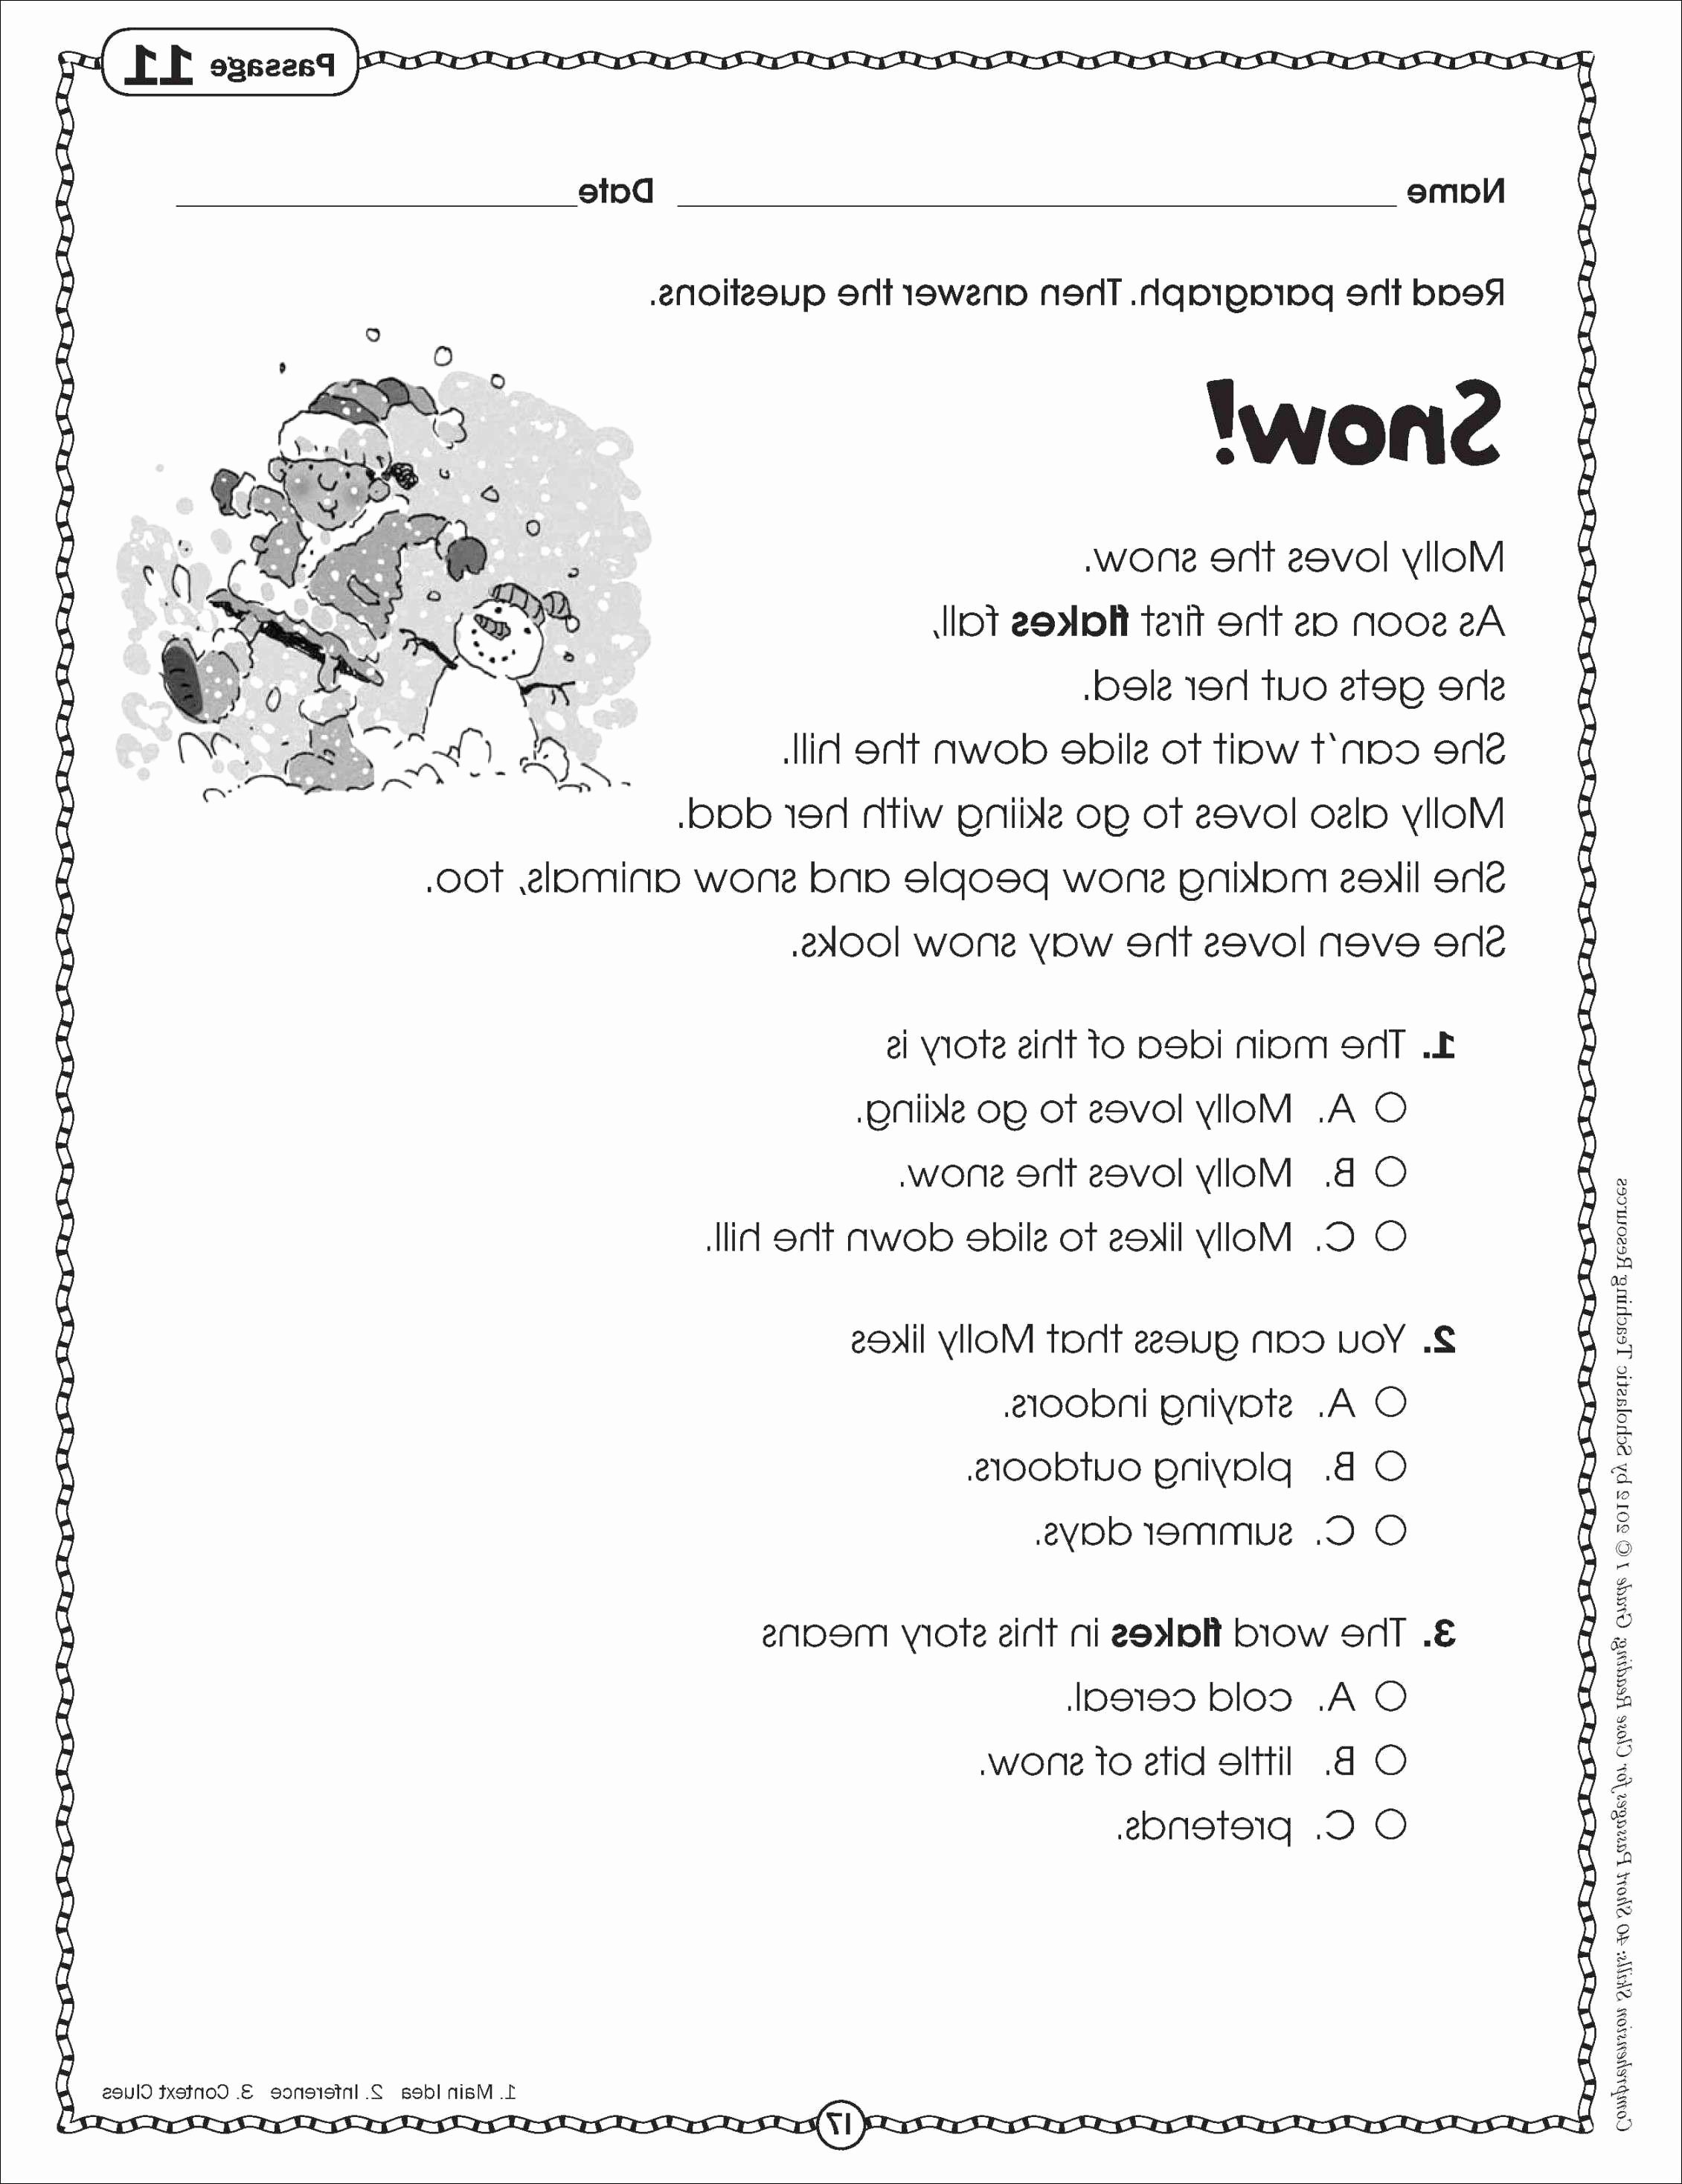 Cnn Student News Worksheet Fresh Cnn Student News Worksheet Worksheet Idea Template